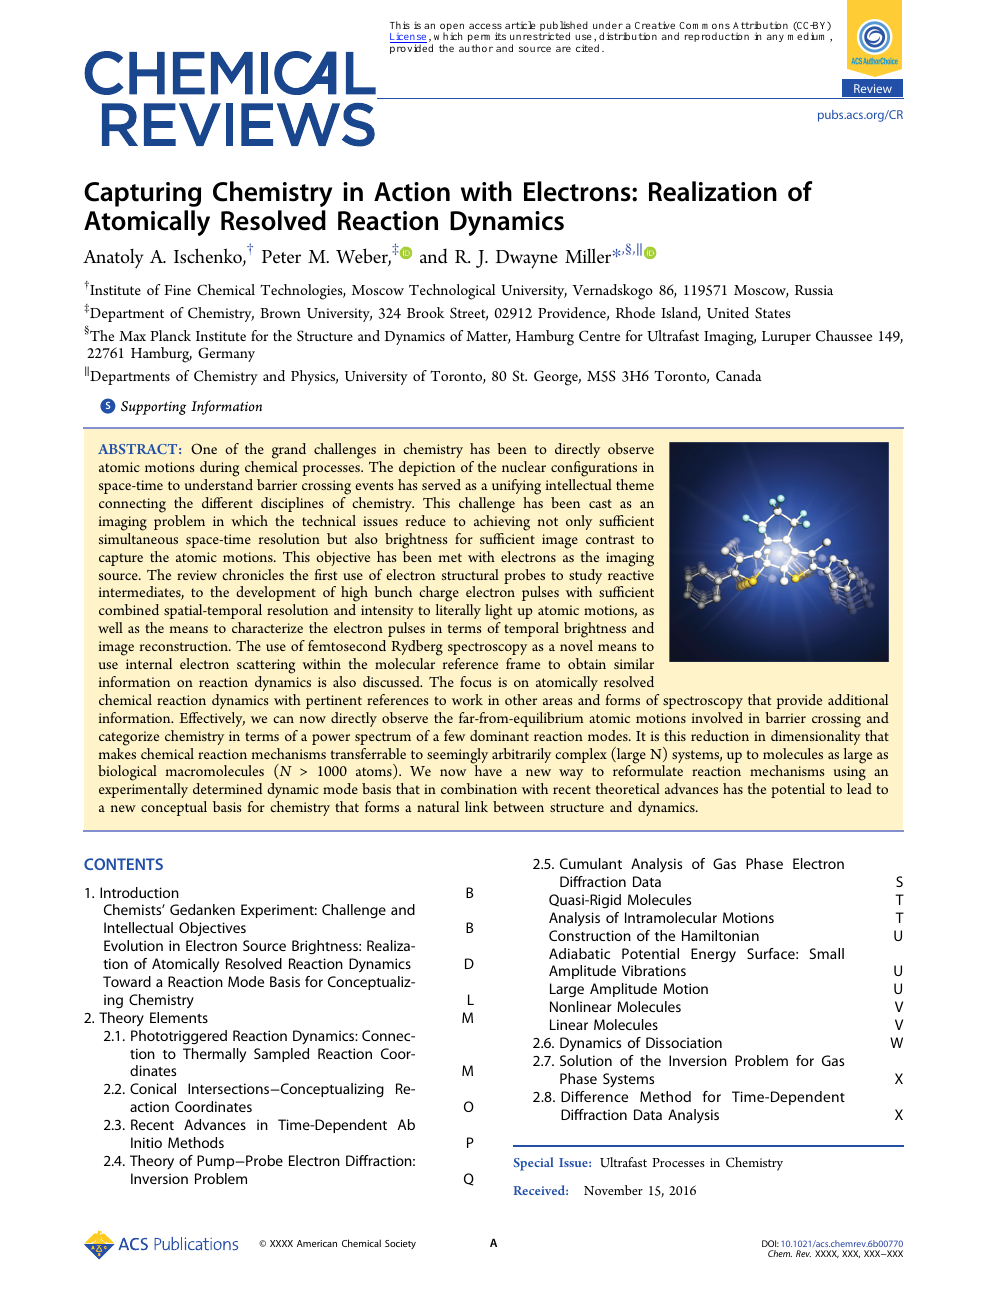 Capturing Chemistry in Action with Electrons: Realization of